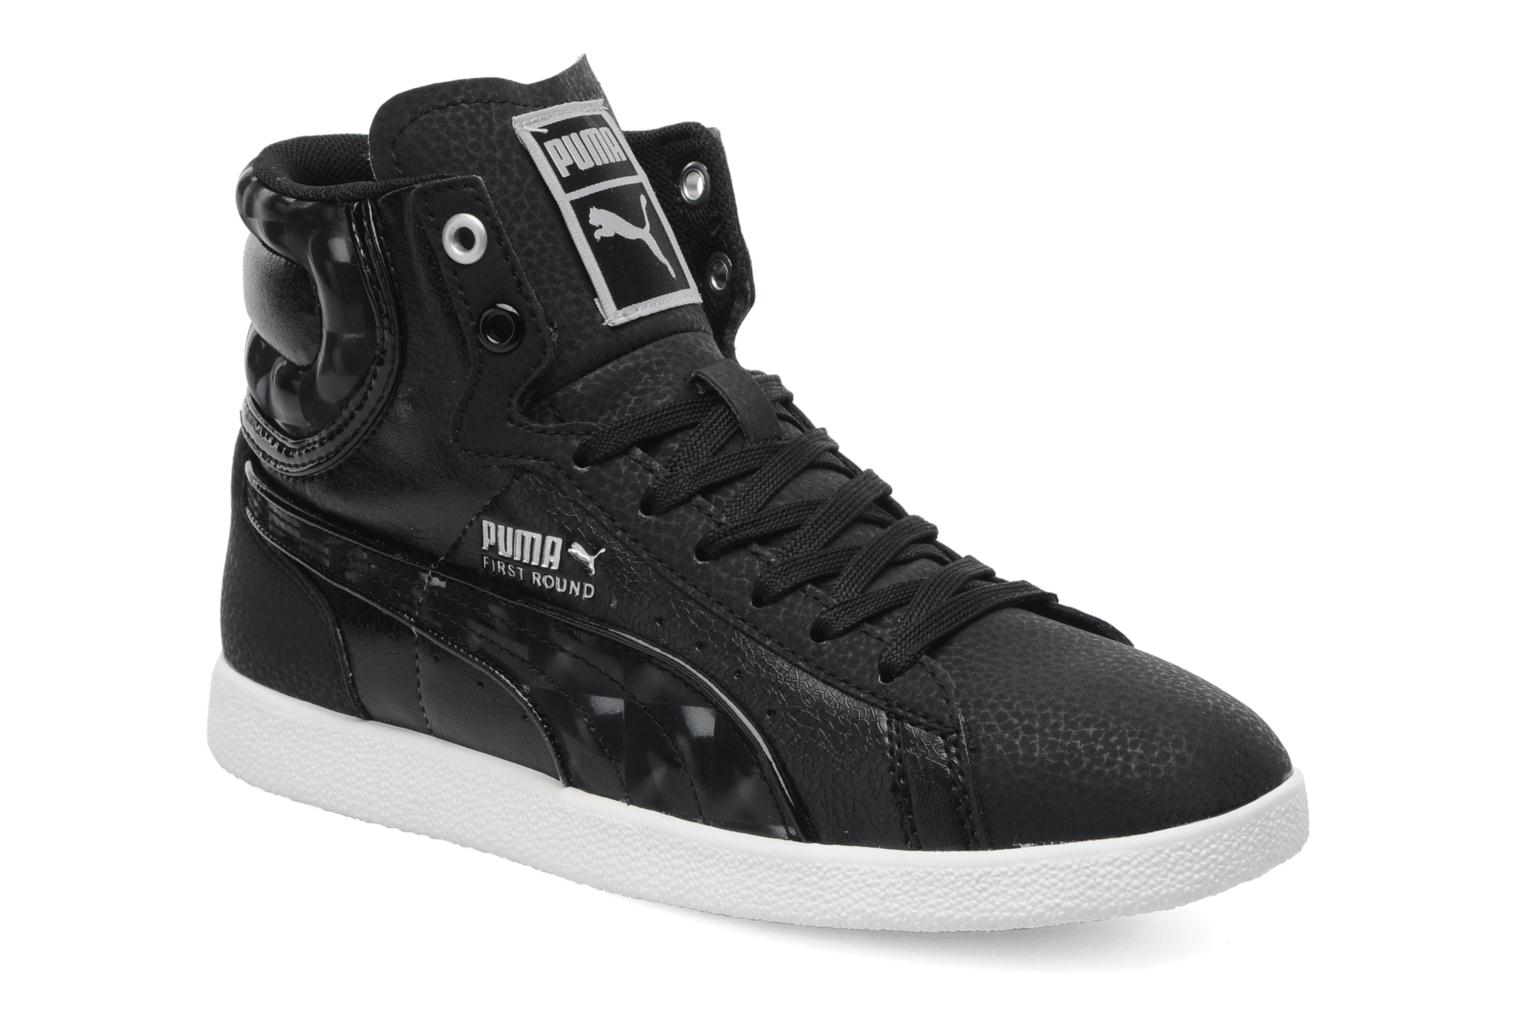 First Round Opulence Jr by Puma